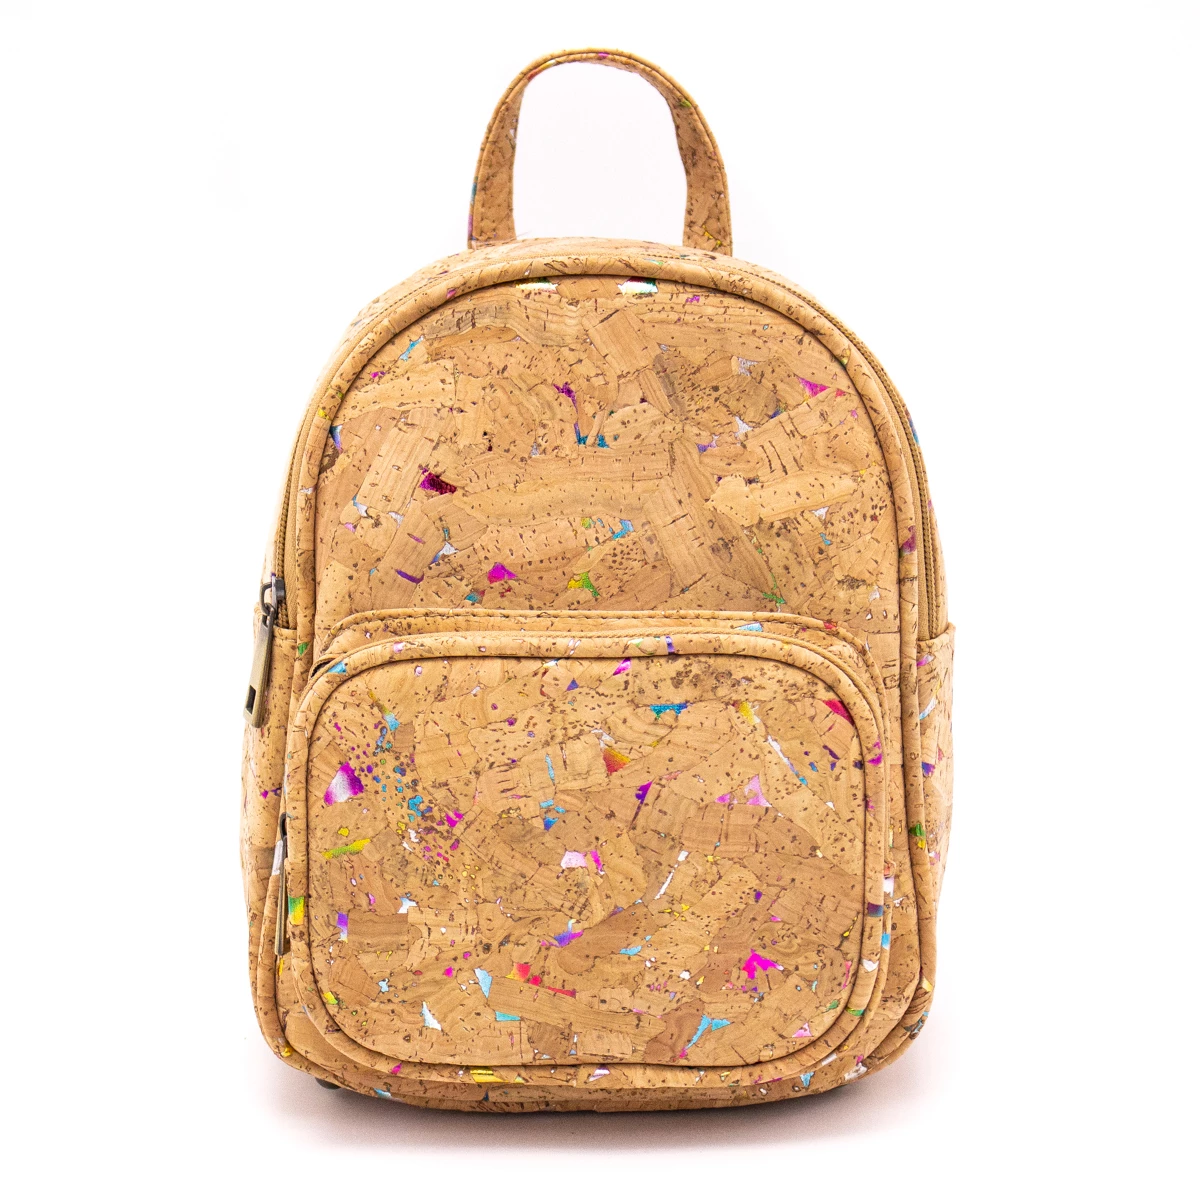 backpack, Lovely Rainbow colored backpack crafted by hand - movevegan, vegan fashion product trends, cork, animal free